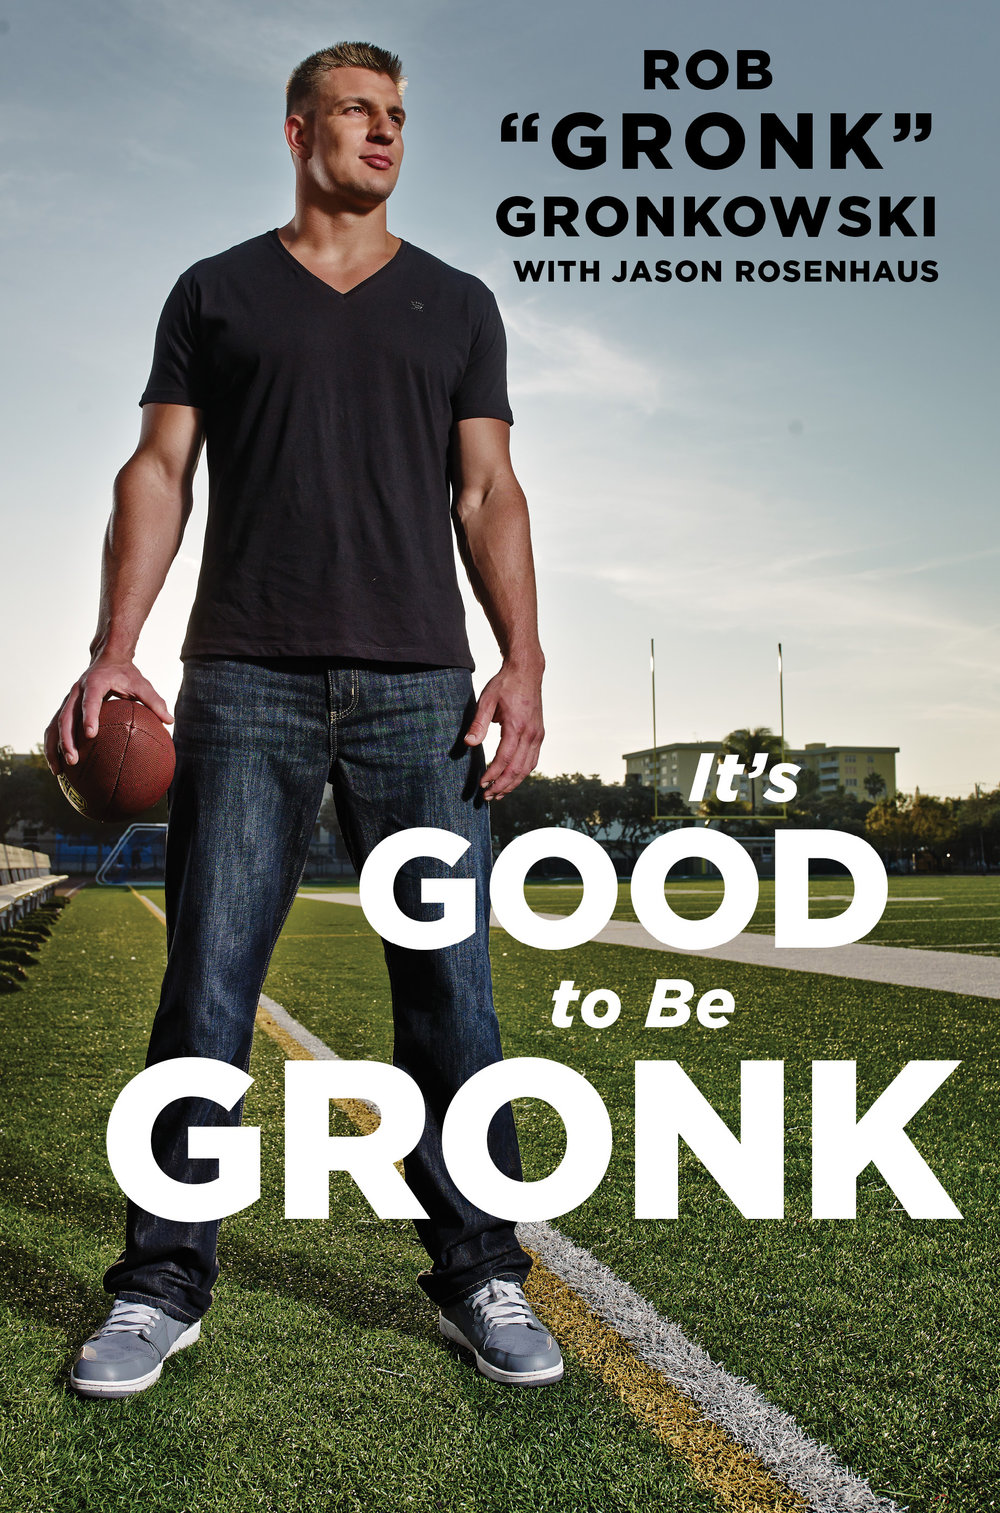 Mark DeLong - Celebrity Photographer - Rob Gronkowski standing on a football field.